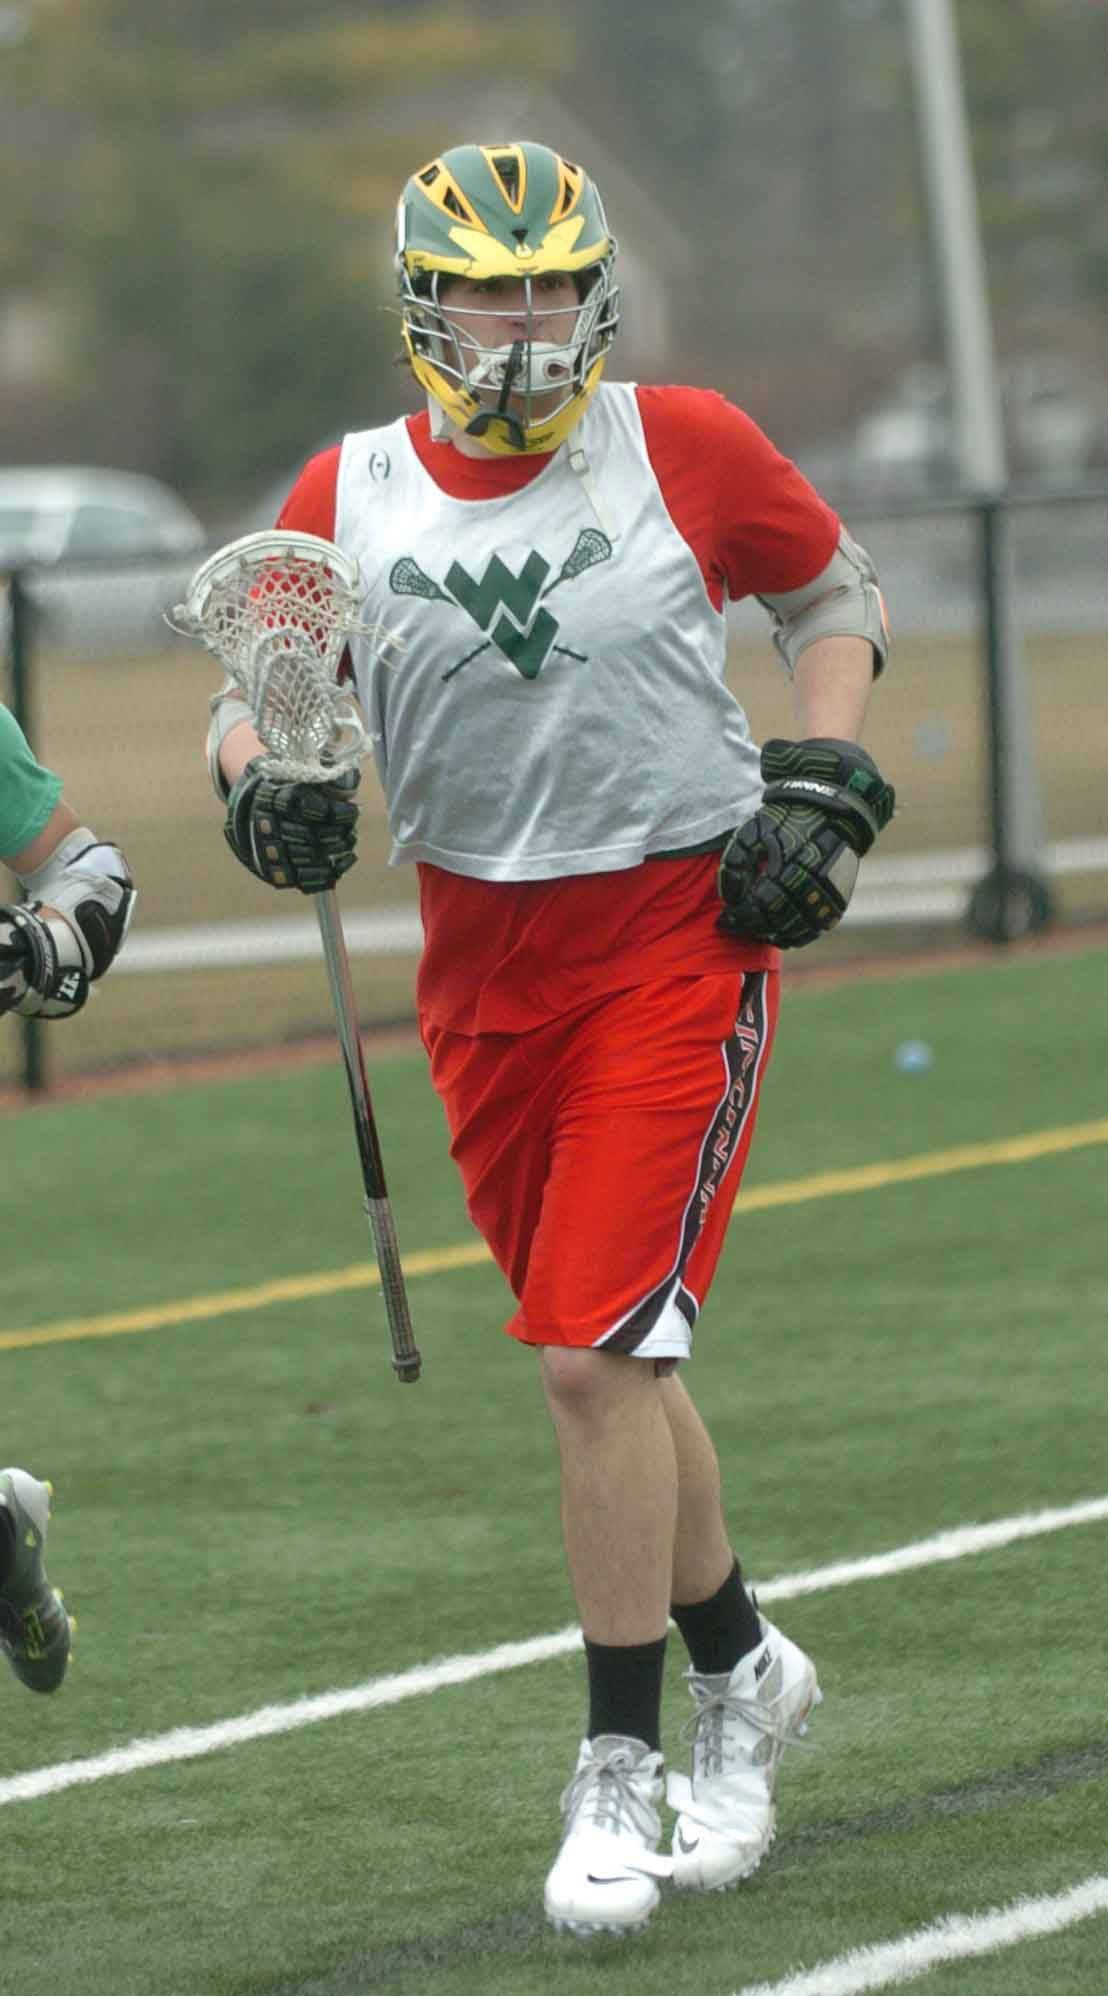 Zach Wood of the Waubonsie/Metea Lacrosse team takes part in practice at Aurora University.